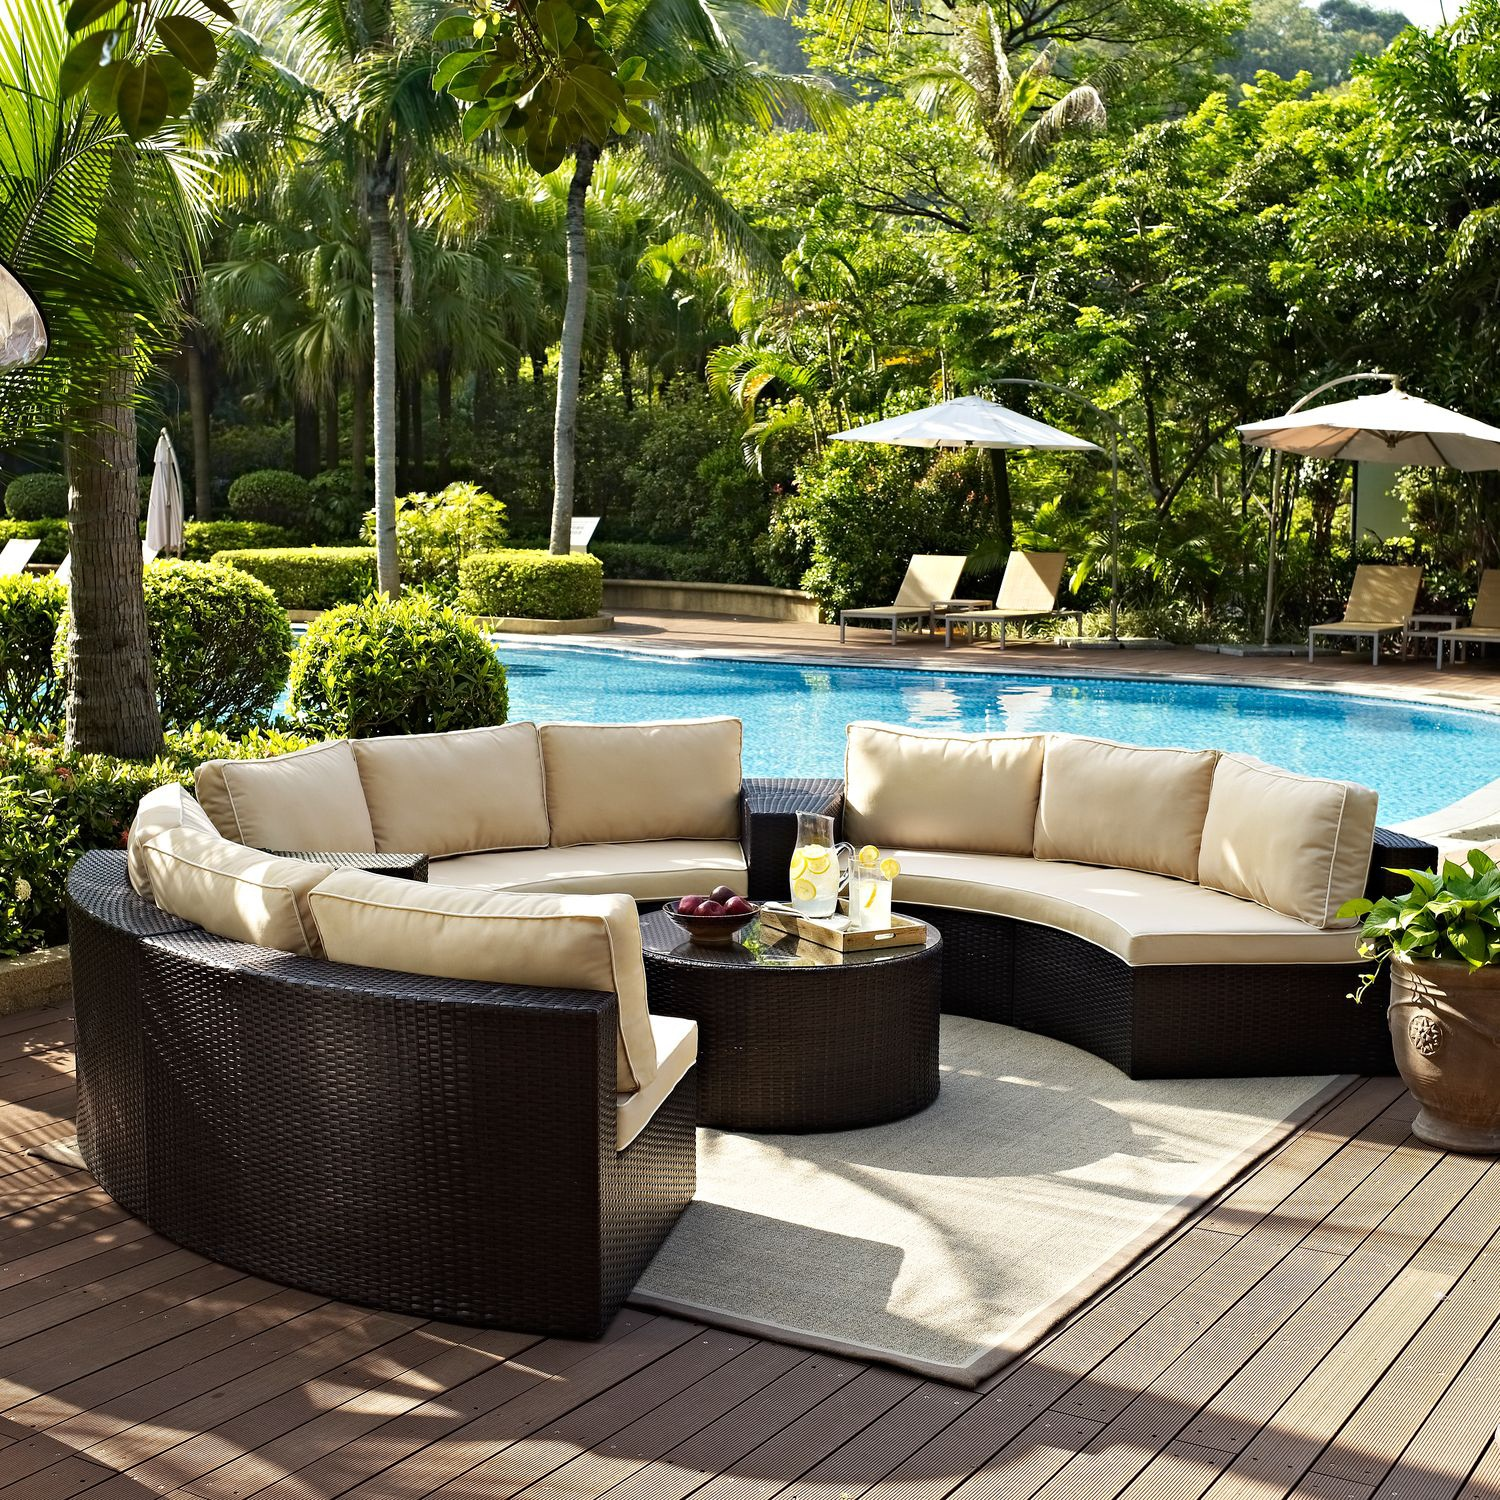 Biltmore 5-Piece Outdoor Sectional and Coffee Table Set ... on 5 Piece Sectional Patio Set id=68533